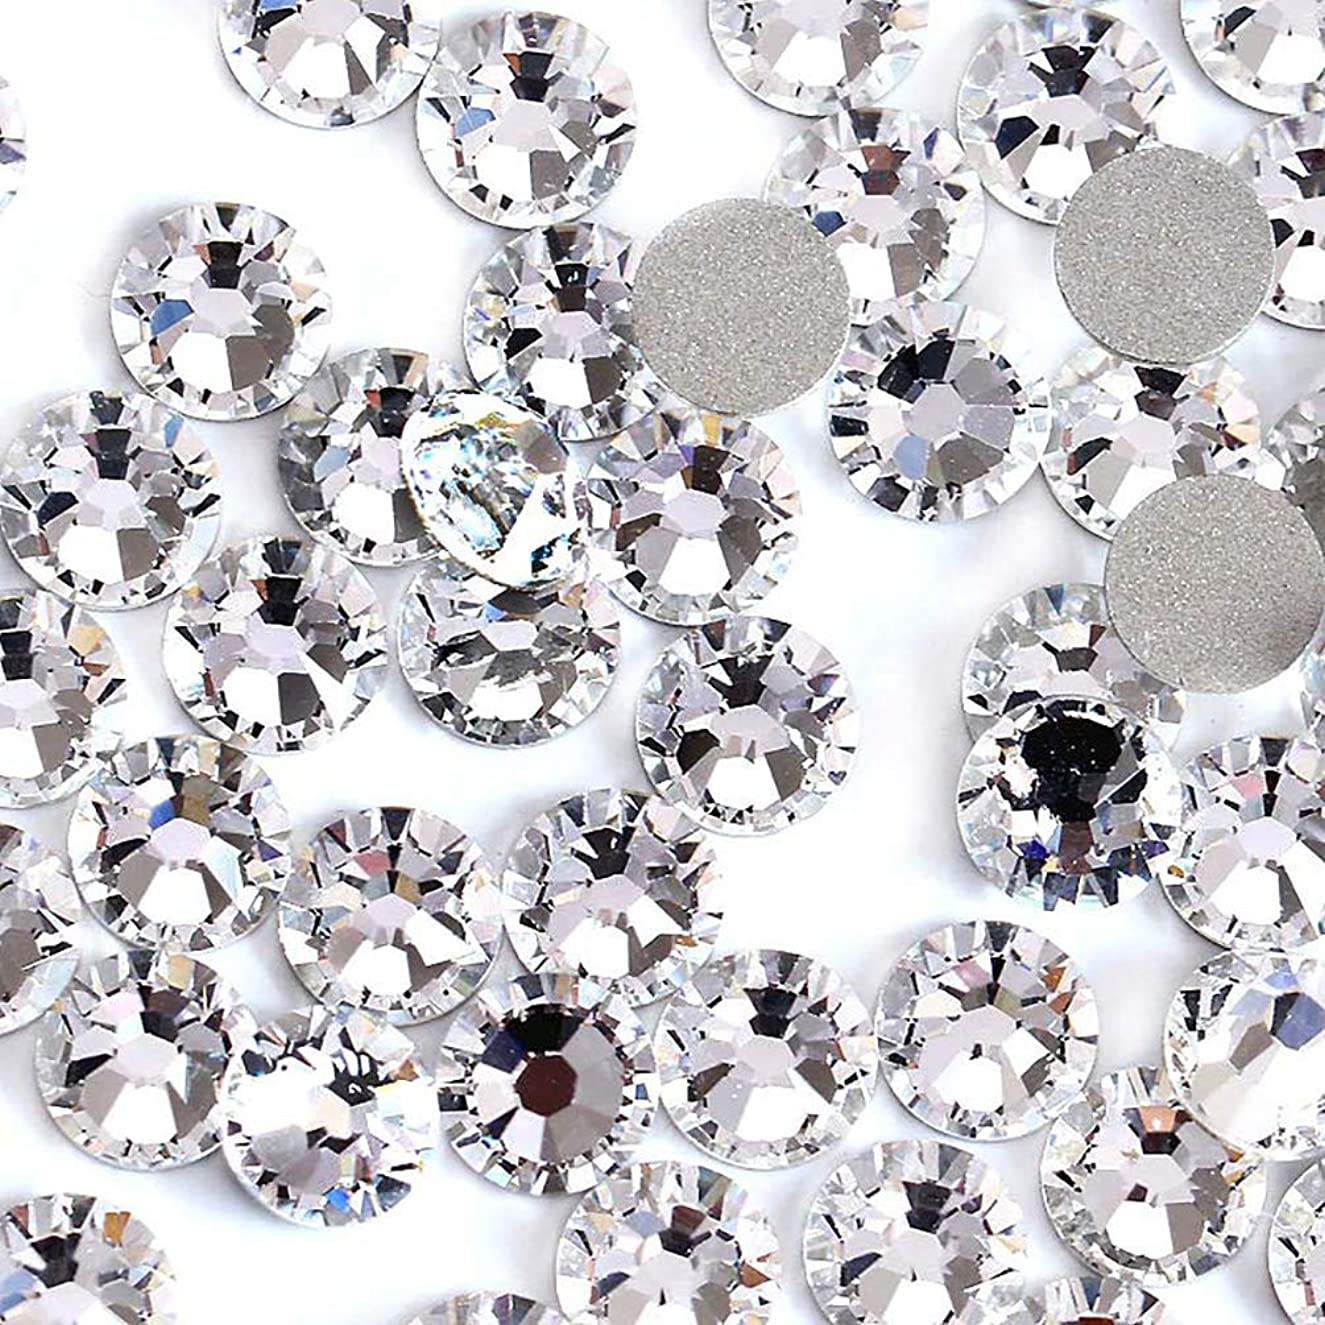 2880pcs/bag Flatback Gemstones And Crystals Clear Craft Rhinestones Nail Art Czech White crystal Decorations For Nails Art Rhinestones For Clothes (ss3)